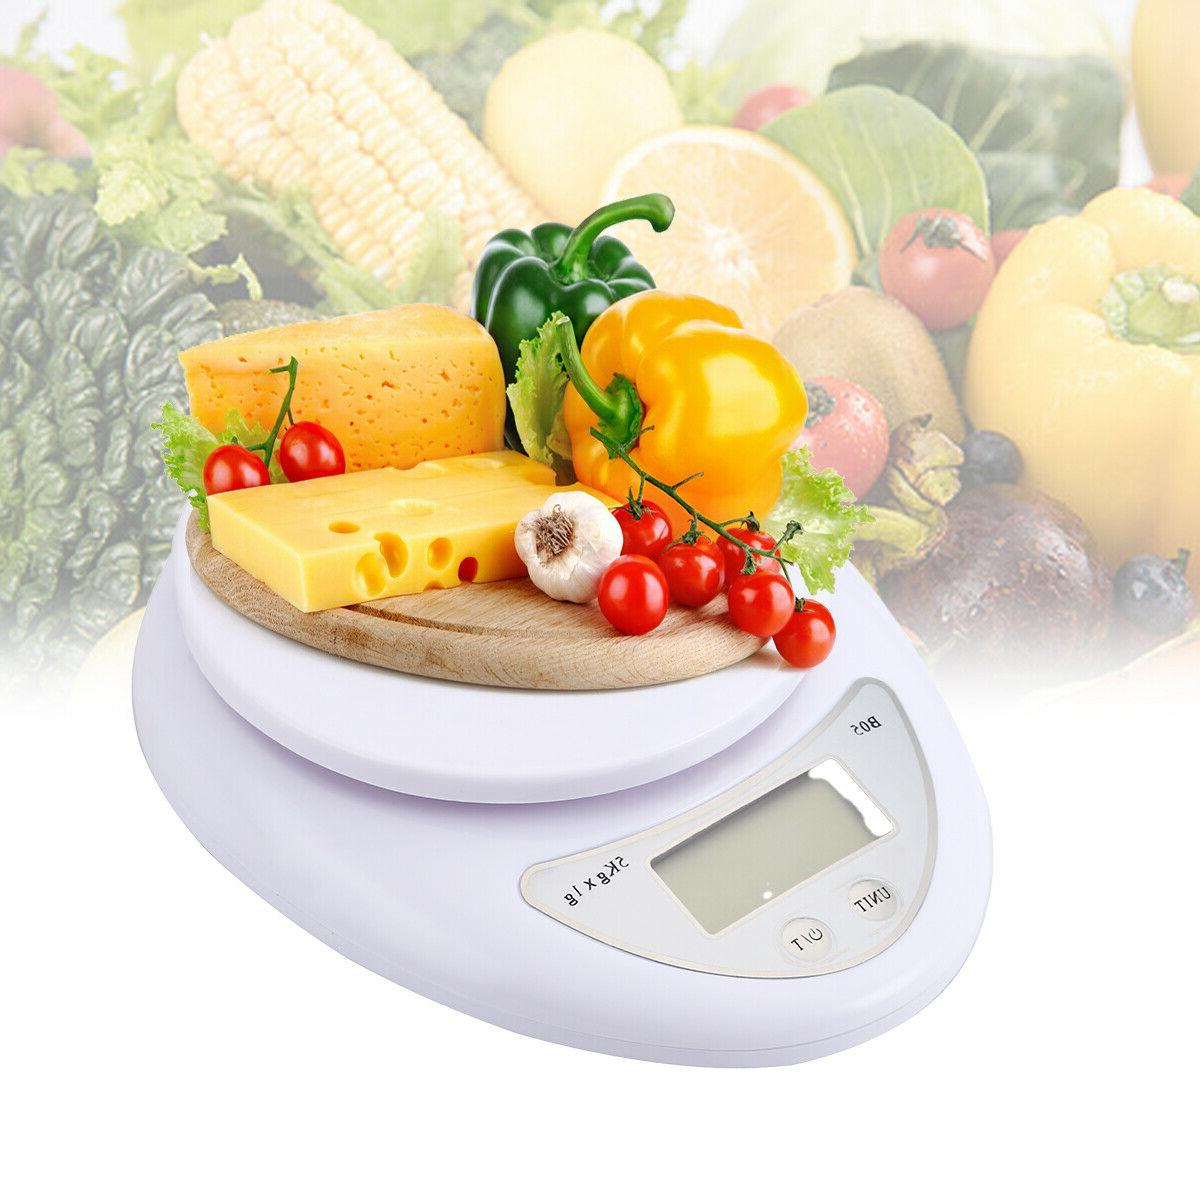 New Cooking Scale in Pounds, and KG